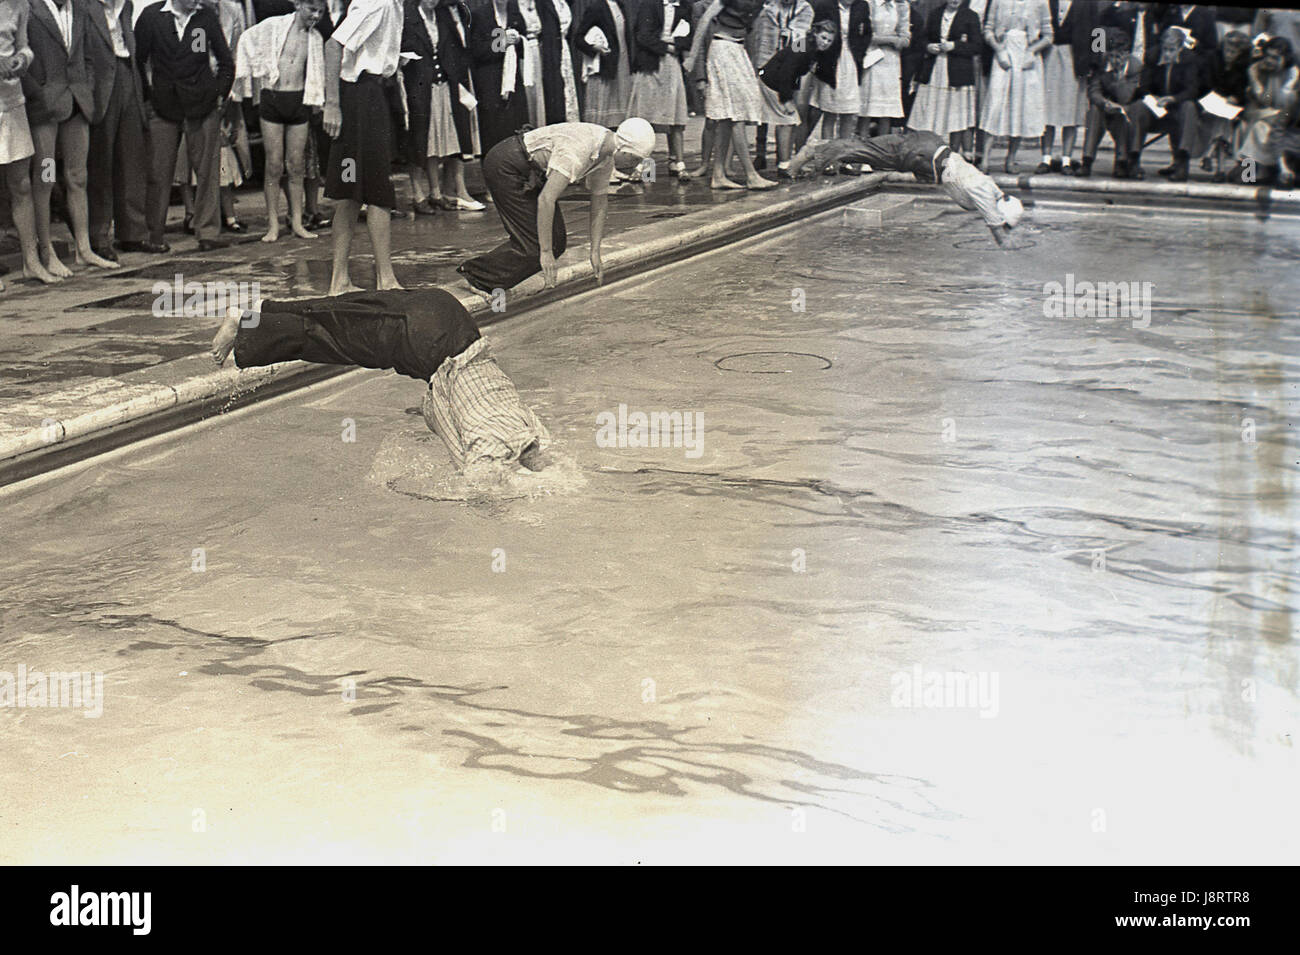 1950s, outdoor swimming gala, adult males dive into the pool fully clothed with swimcaps, England, UK. - Stock Image